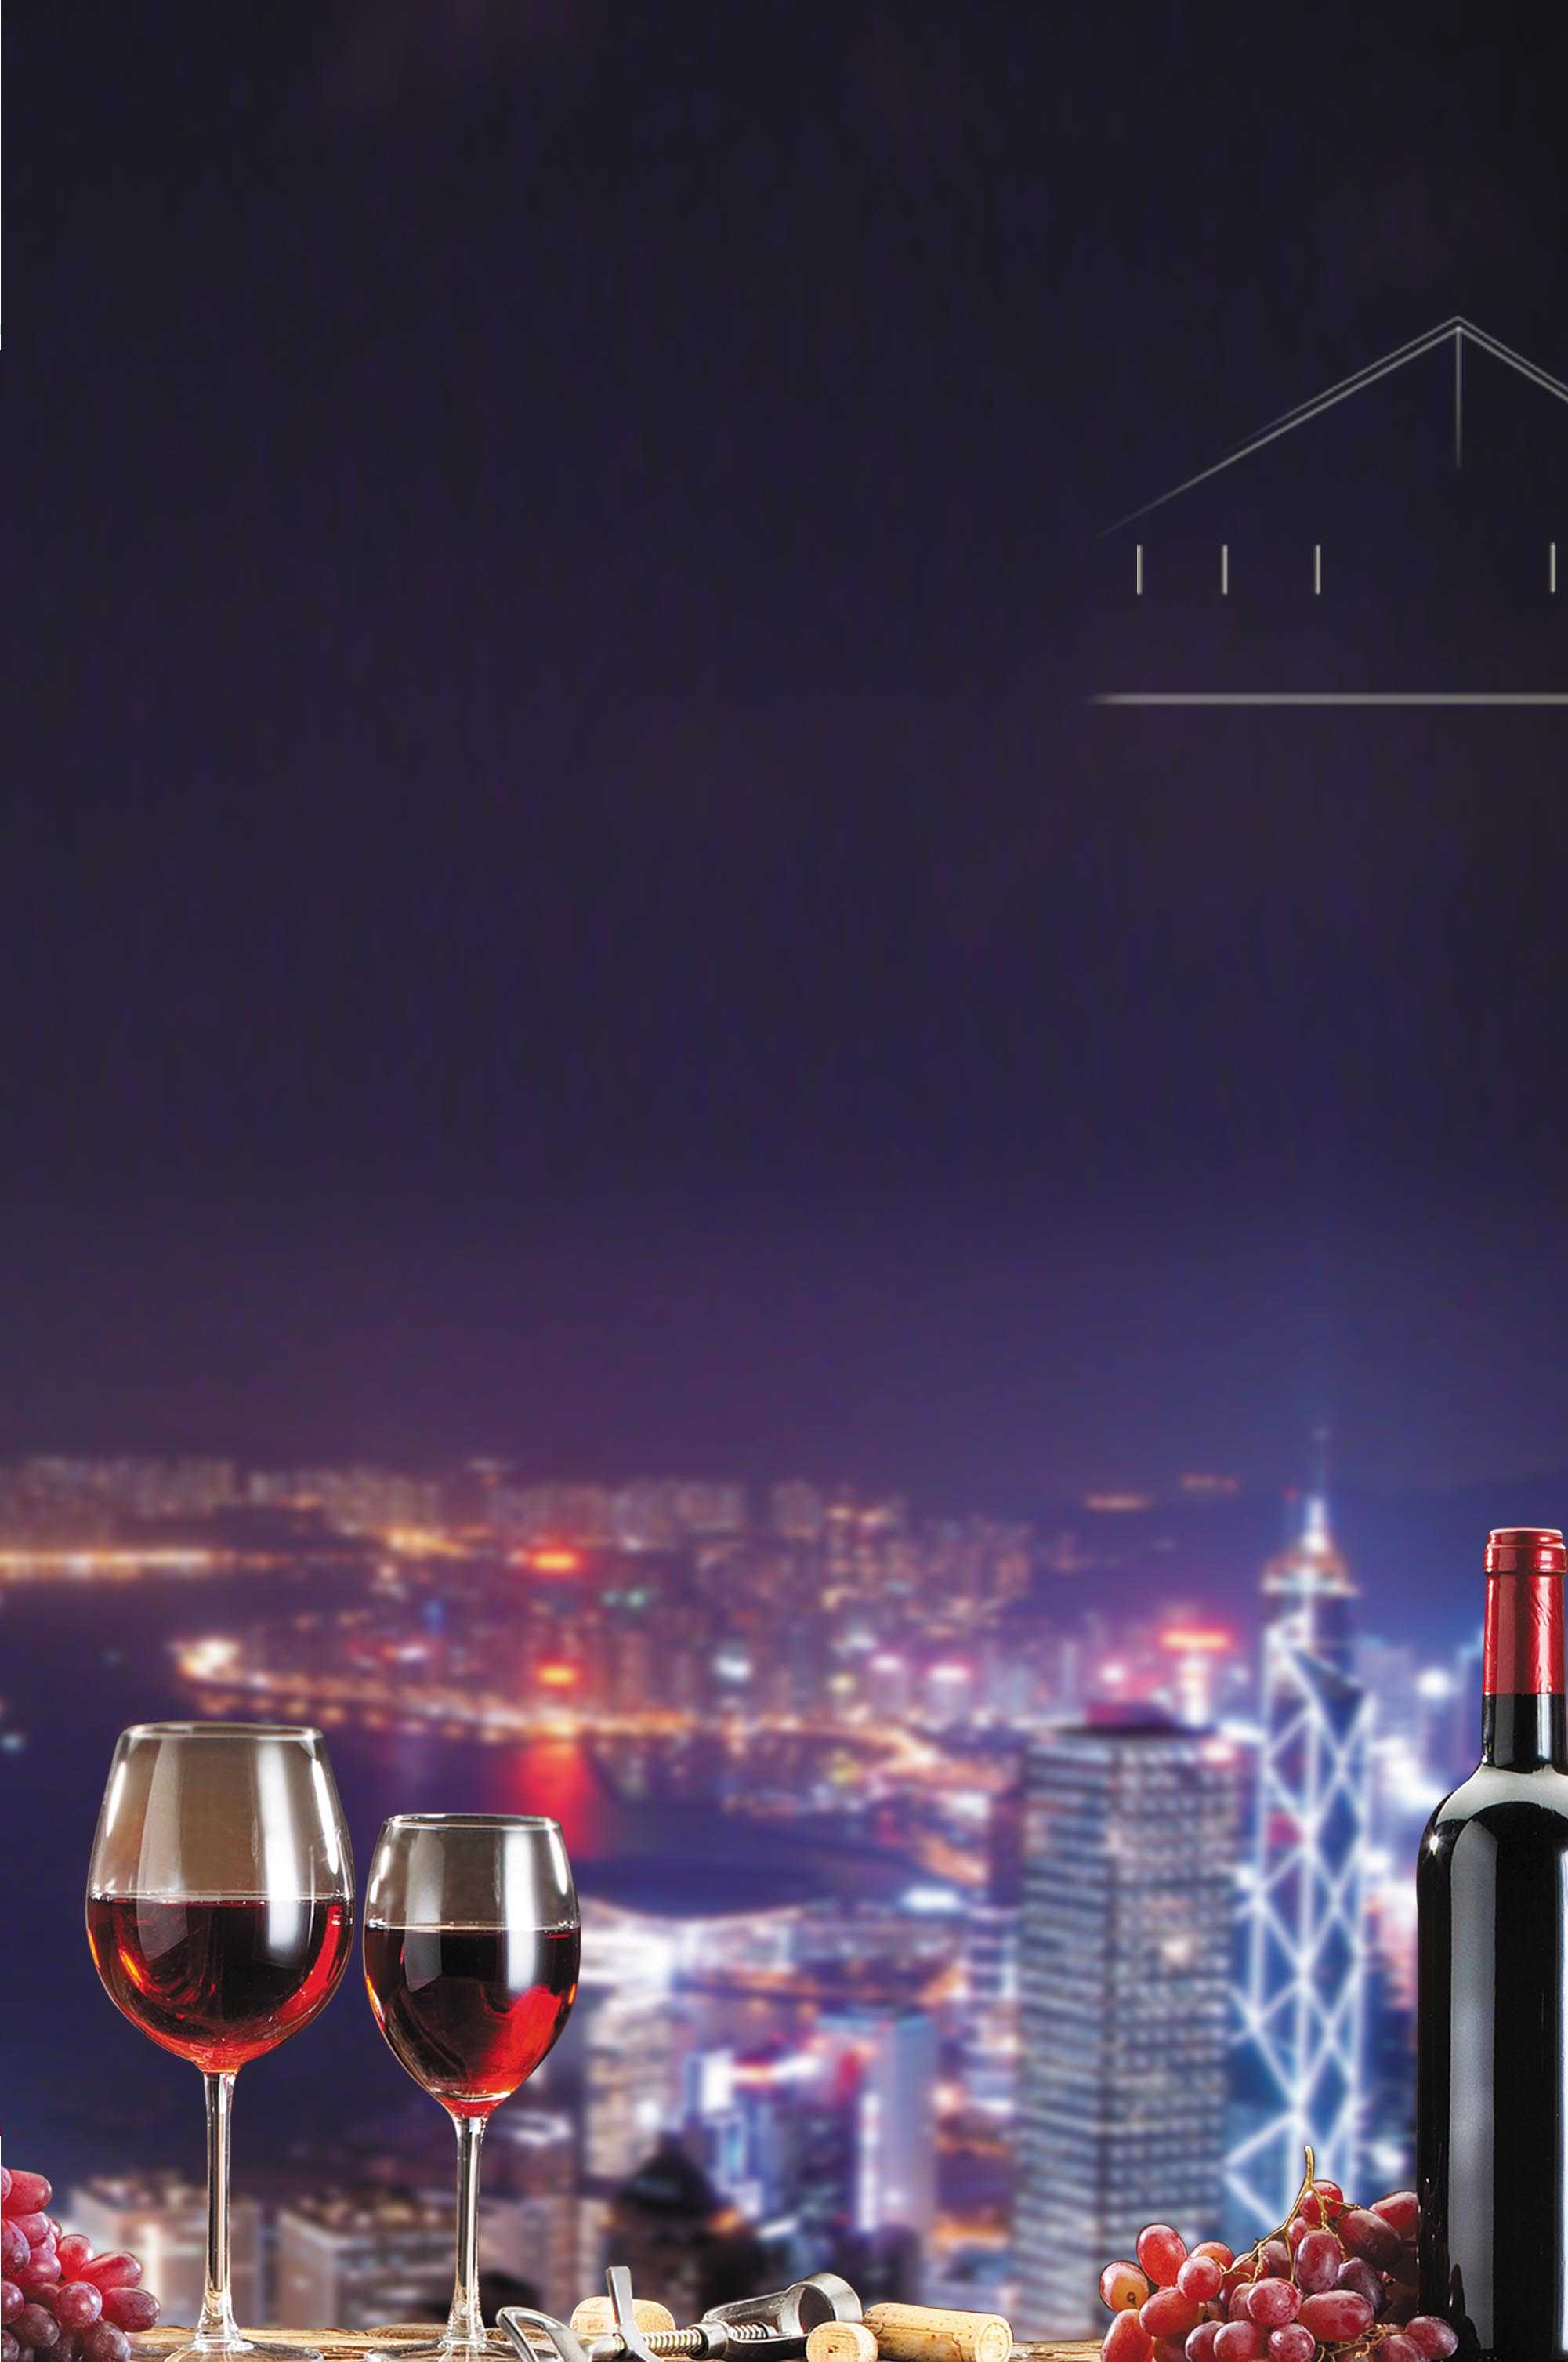 Wine 3d Wallpaper Business Cocktail Party Red Wine City Night Scene City